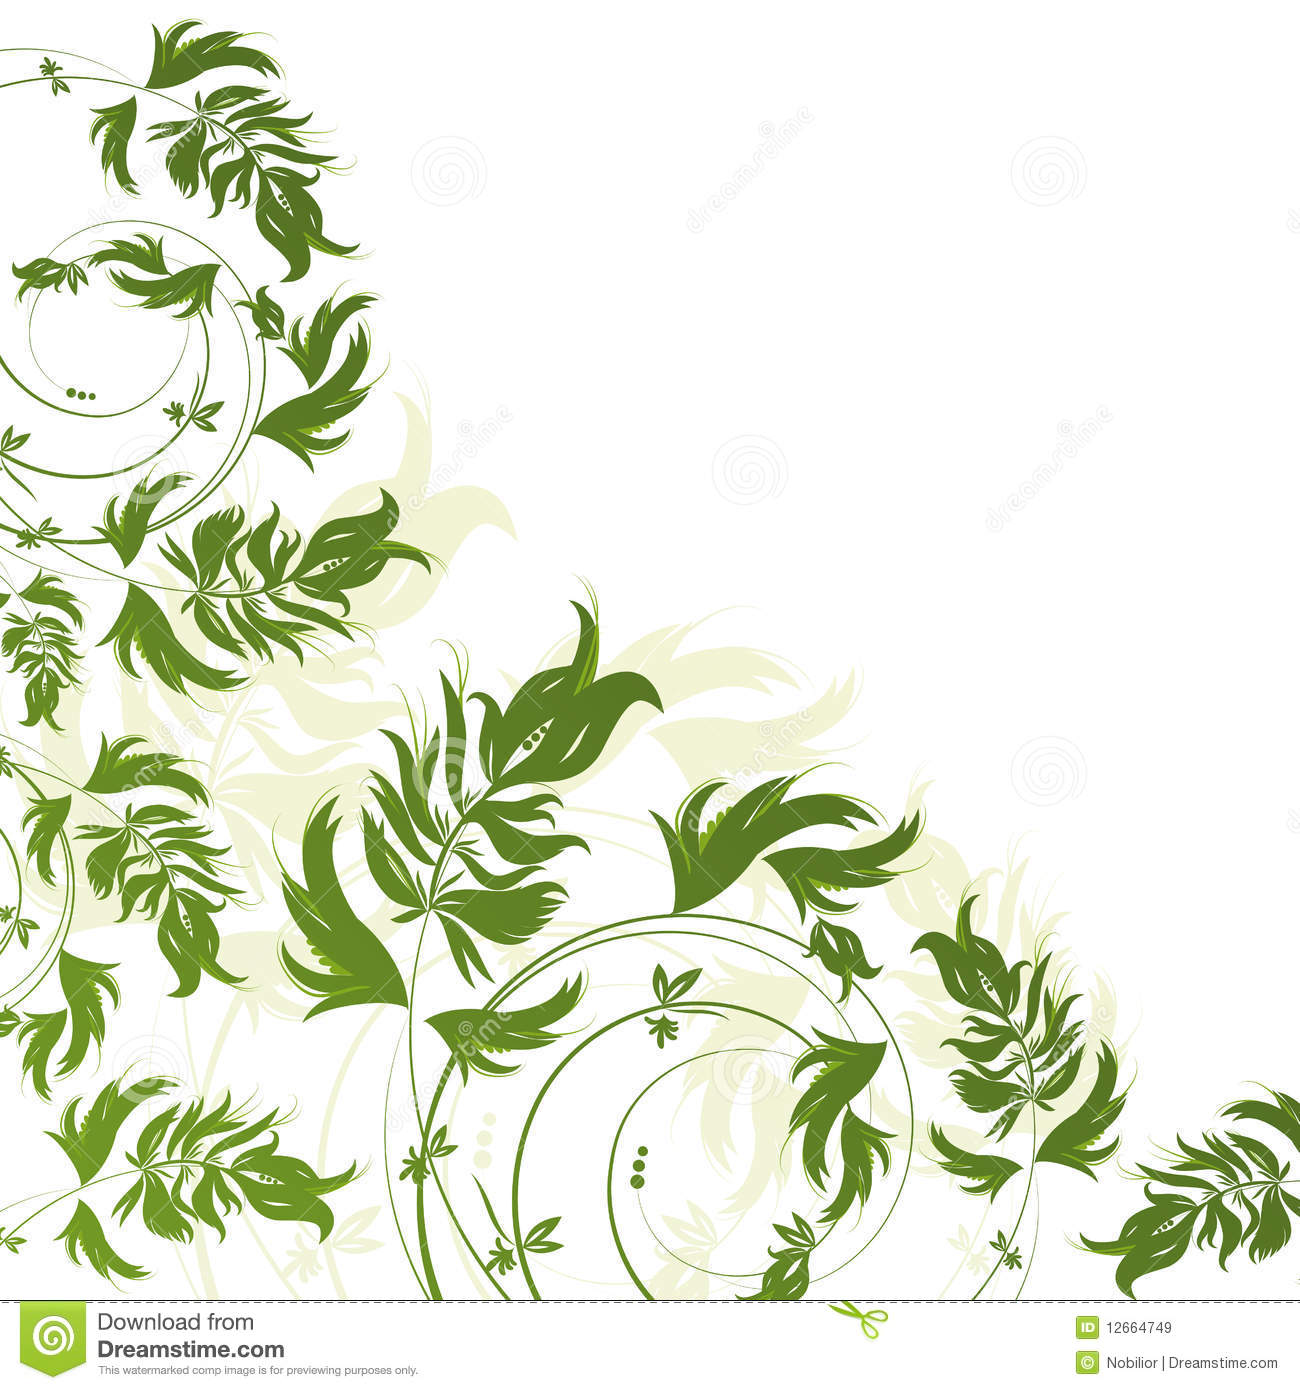 Green and white floral pattern - photo#23